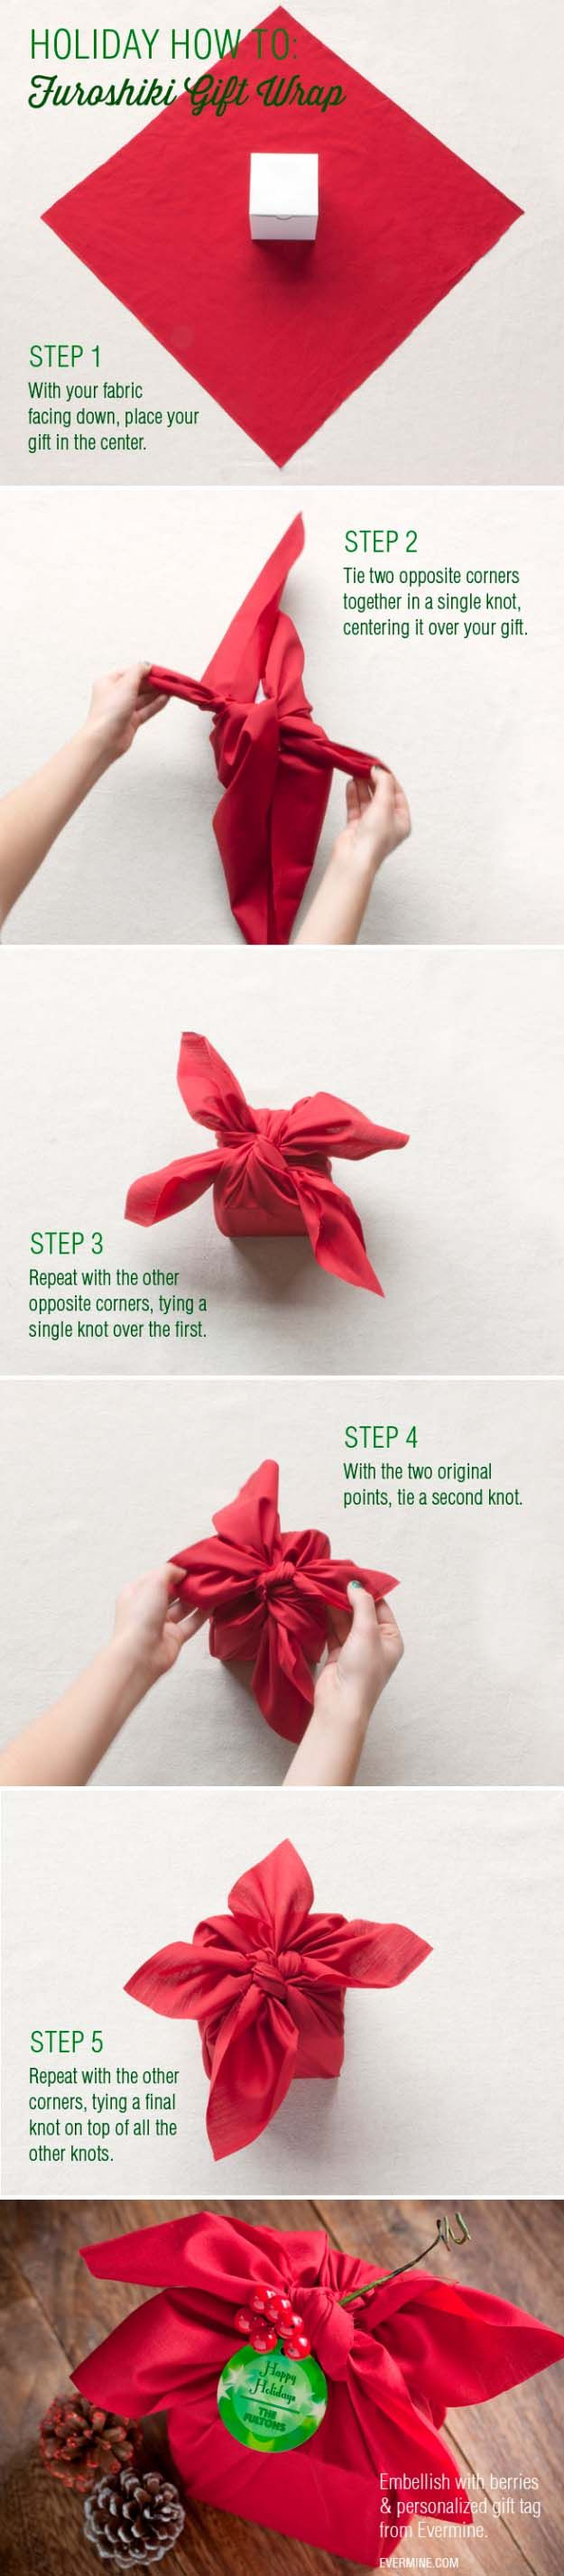 Creative Wrapping Papers |  Furoshiki Gift Wrap  |  http://diyjoy.com/how-to-wrap-a-gift-wrapping-ideas